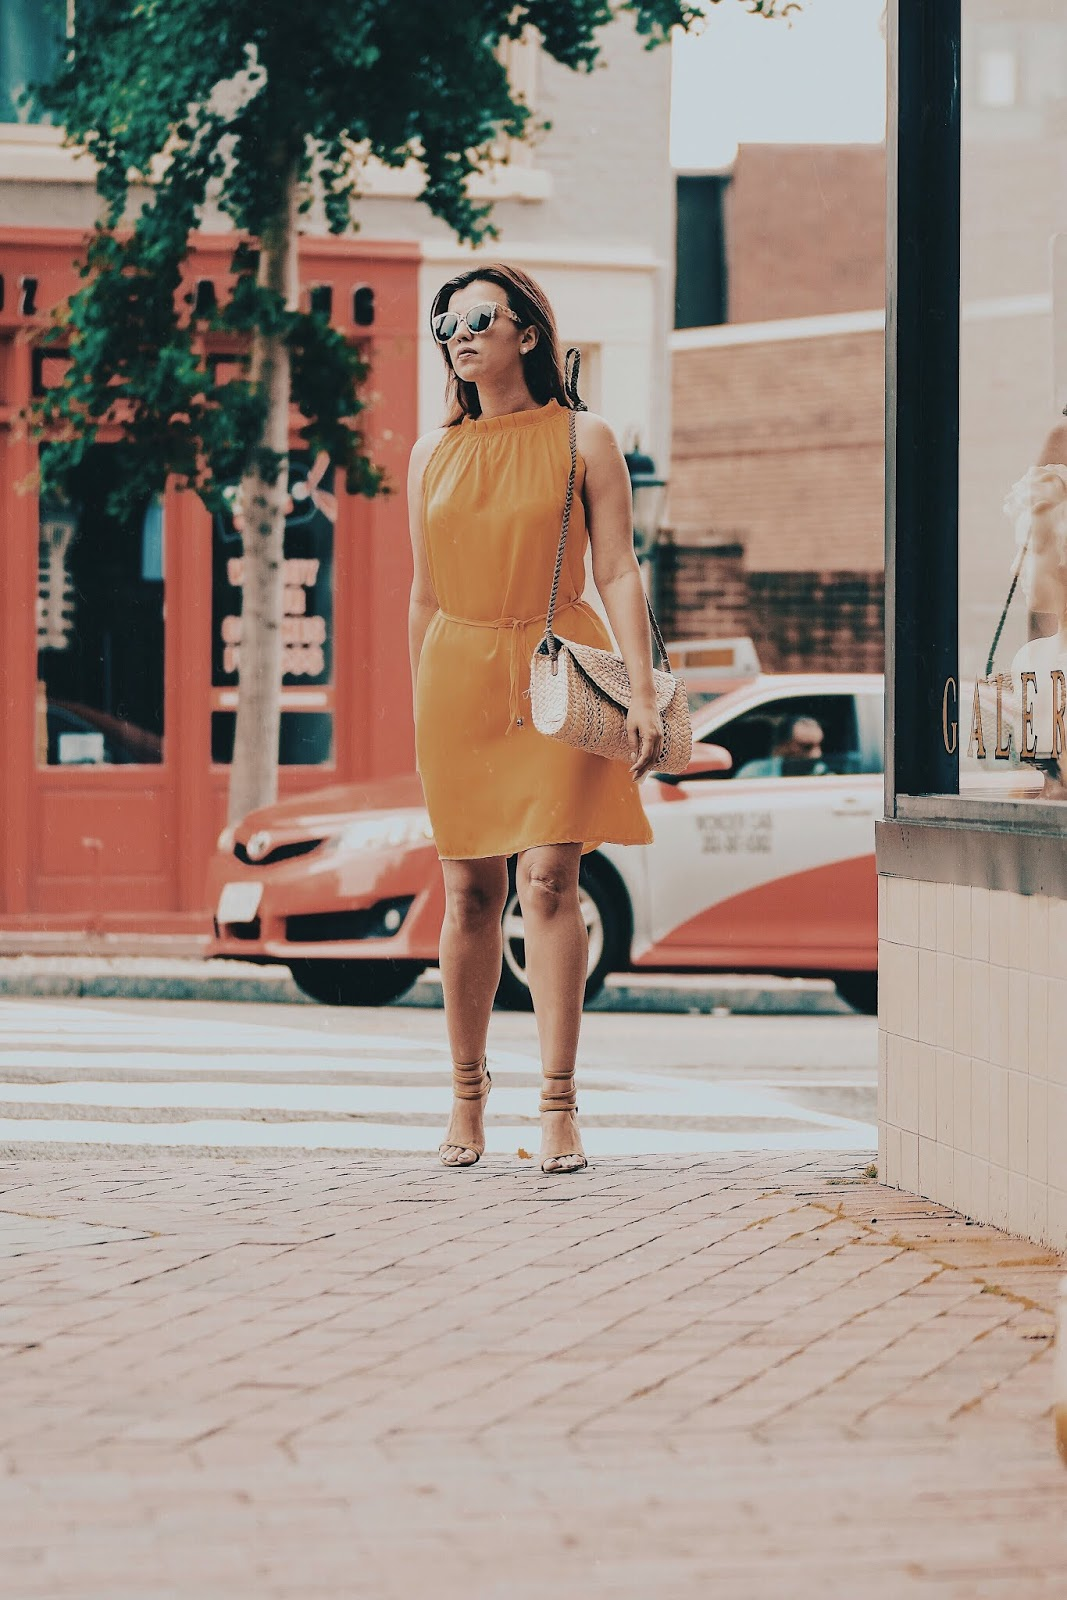 Back To The Beginning-mariestilo-lookoftheday-mural-georgetown-travelblogger-dcblogger-fashionblog-travelblog-vestidos-verano2018